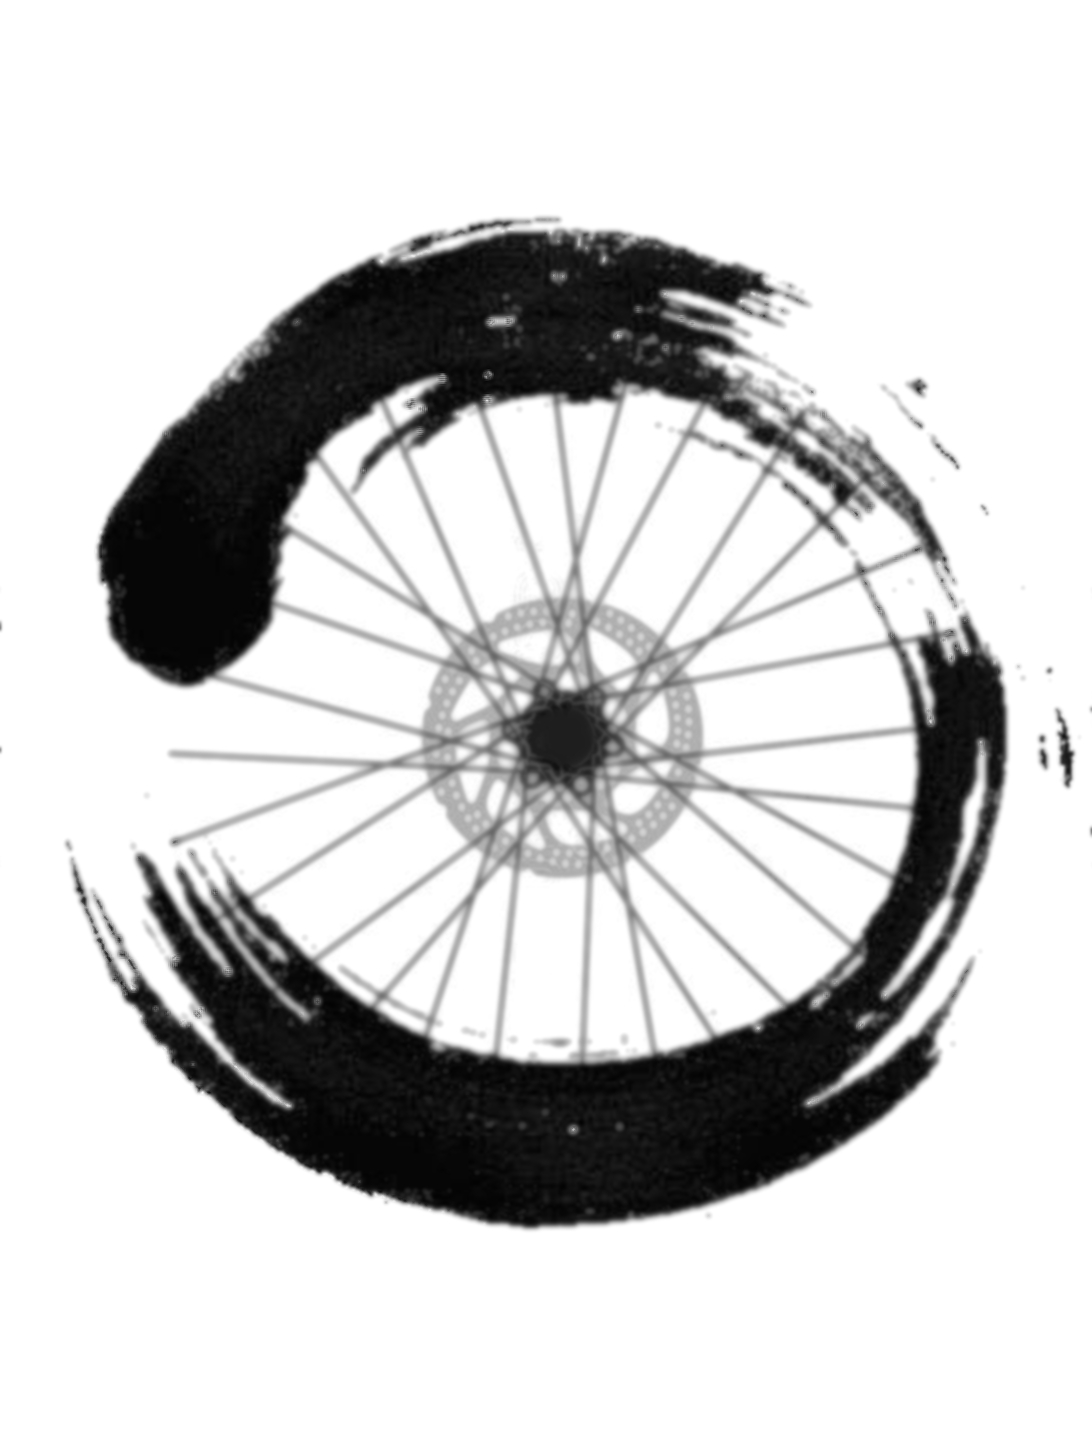 ensō bike wheel - cycle in the zone